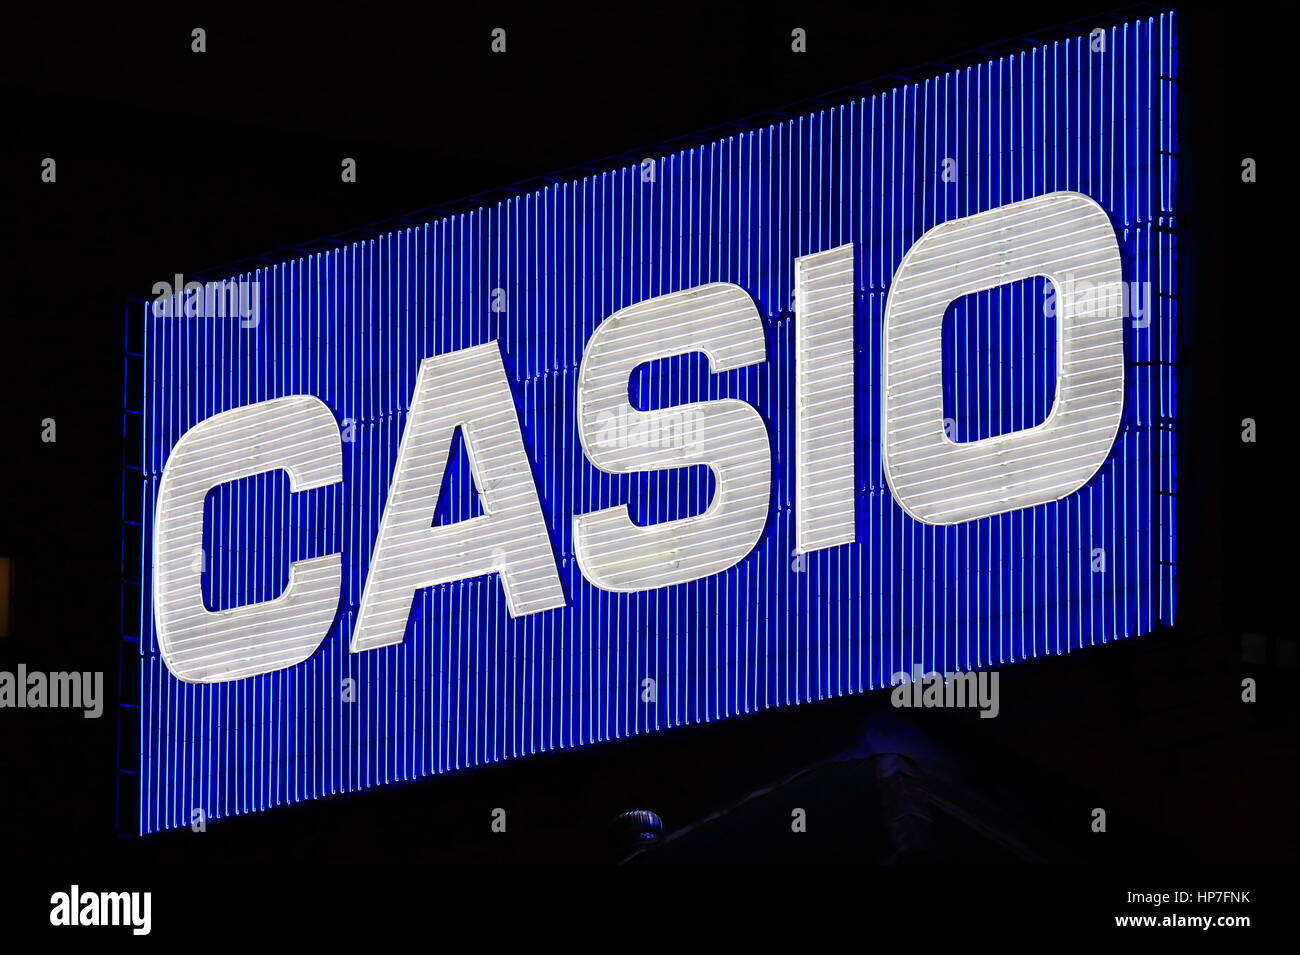 Casio. Casio is a Japanese multinational consumer electronics and commercial electronics manufacturing company - Stock Image